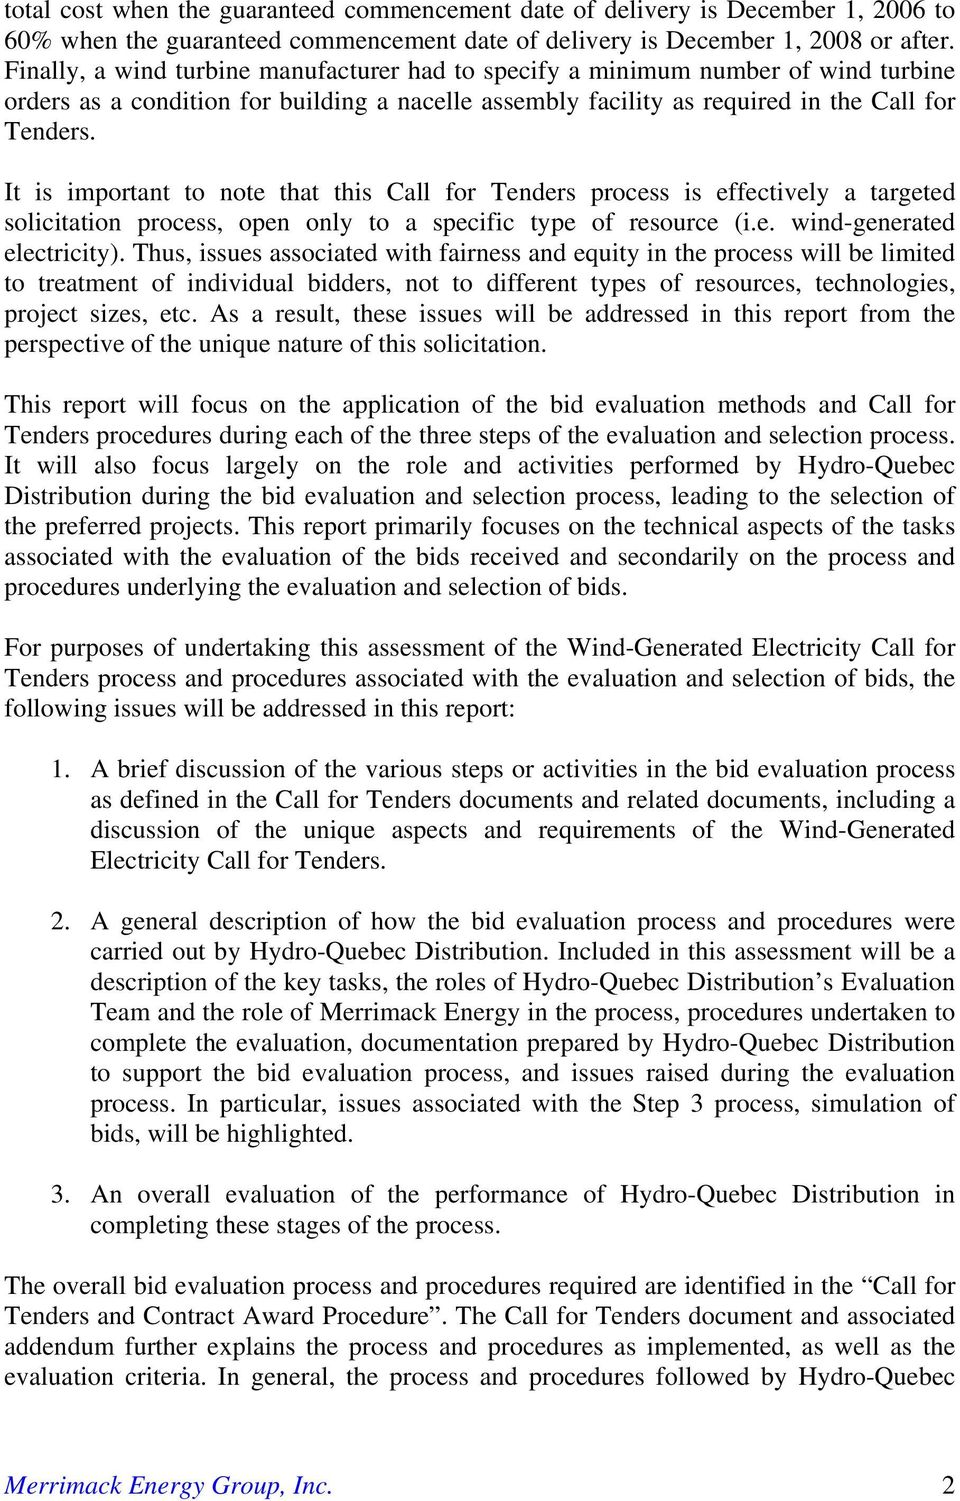 Final Report Bid Evaluation and Selection Process For Wind-Generated